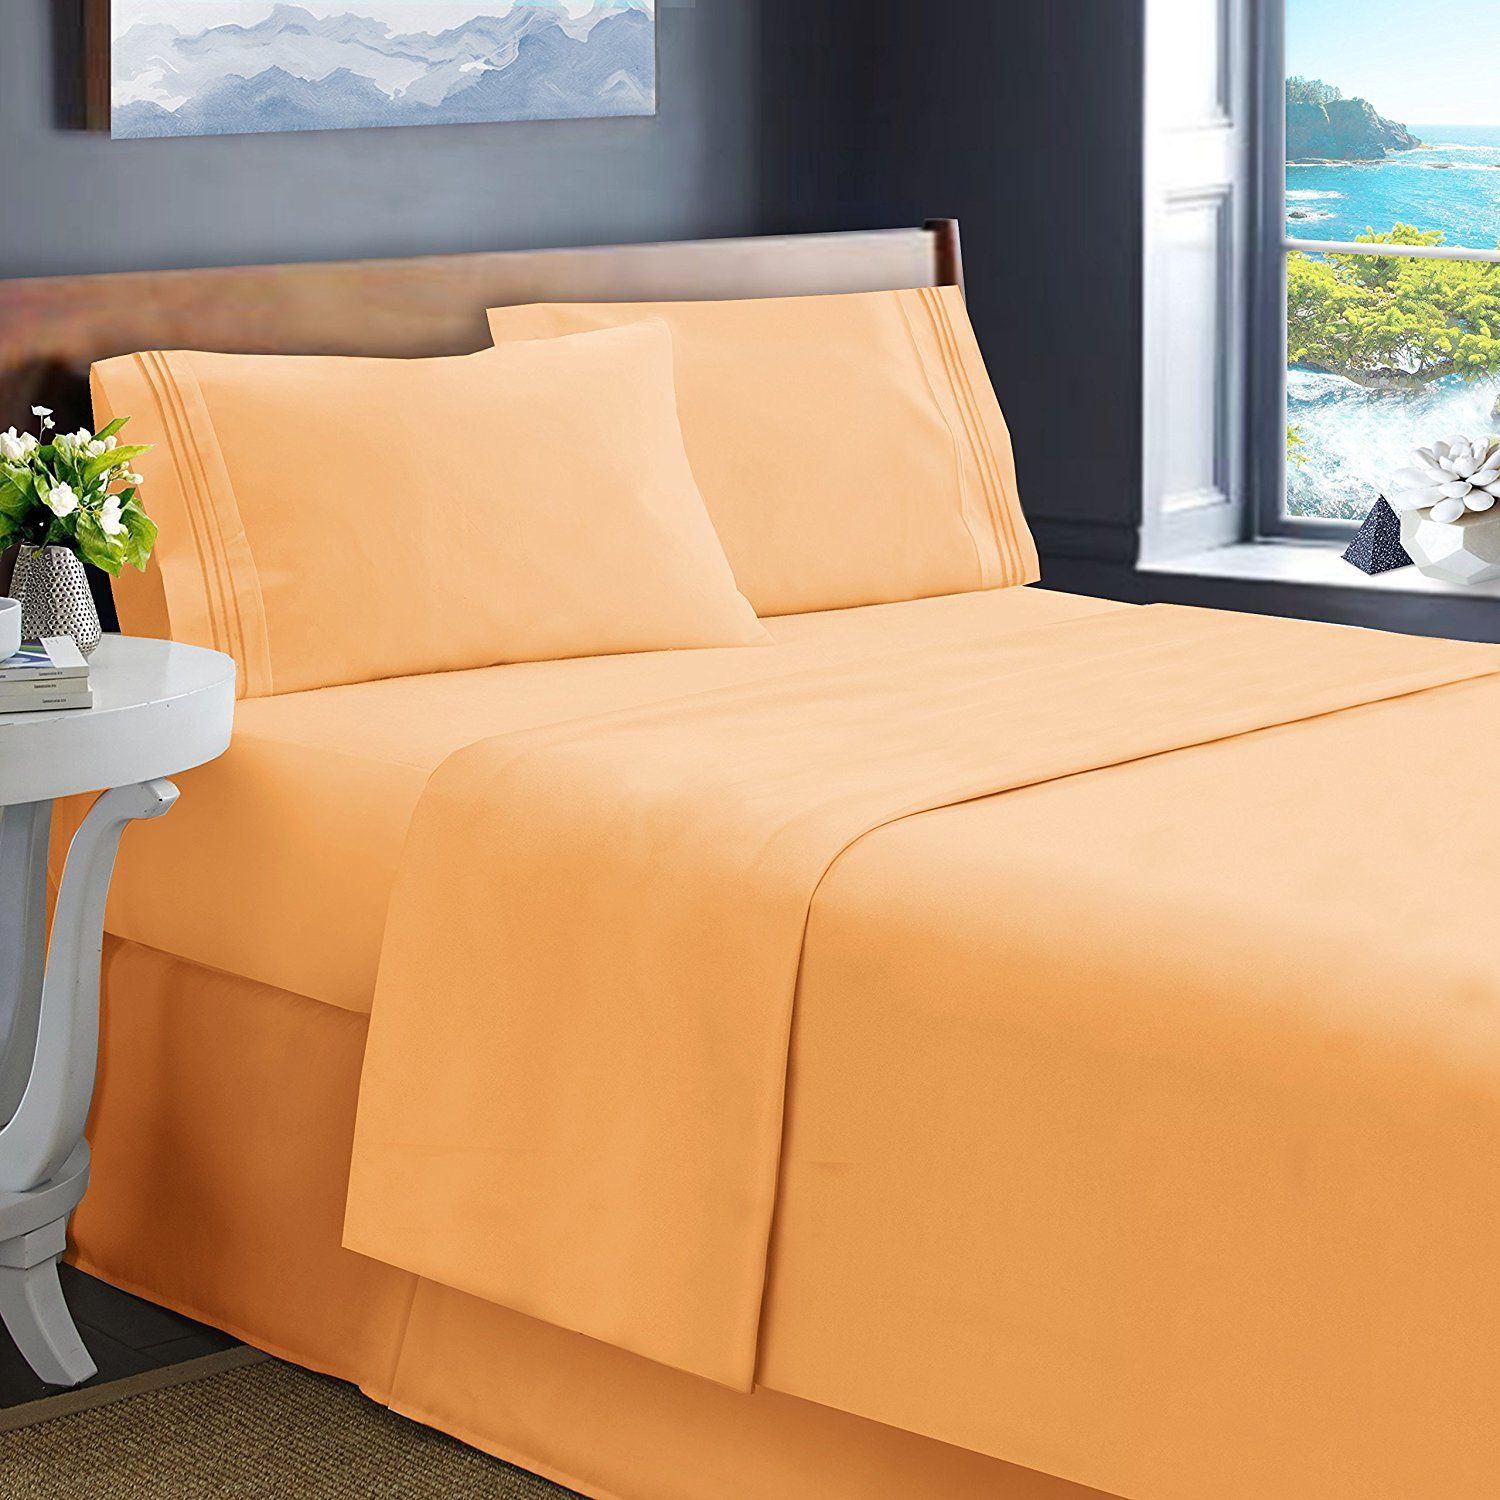 Hearth U0026 Harbor King Size Bed Sheets, Apricot Orange   Soft Luxury Best  Quality 4